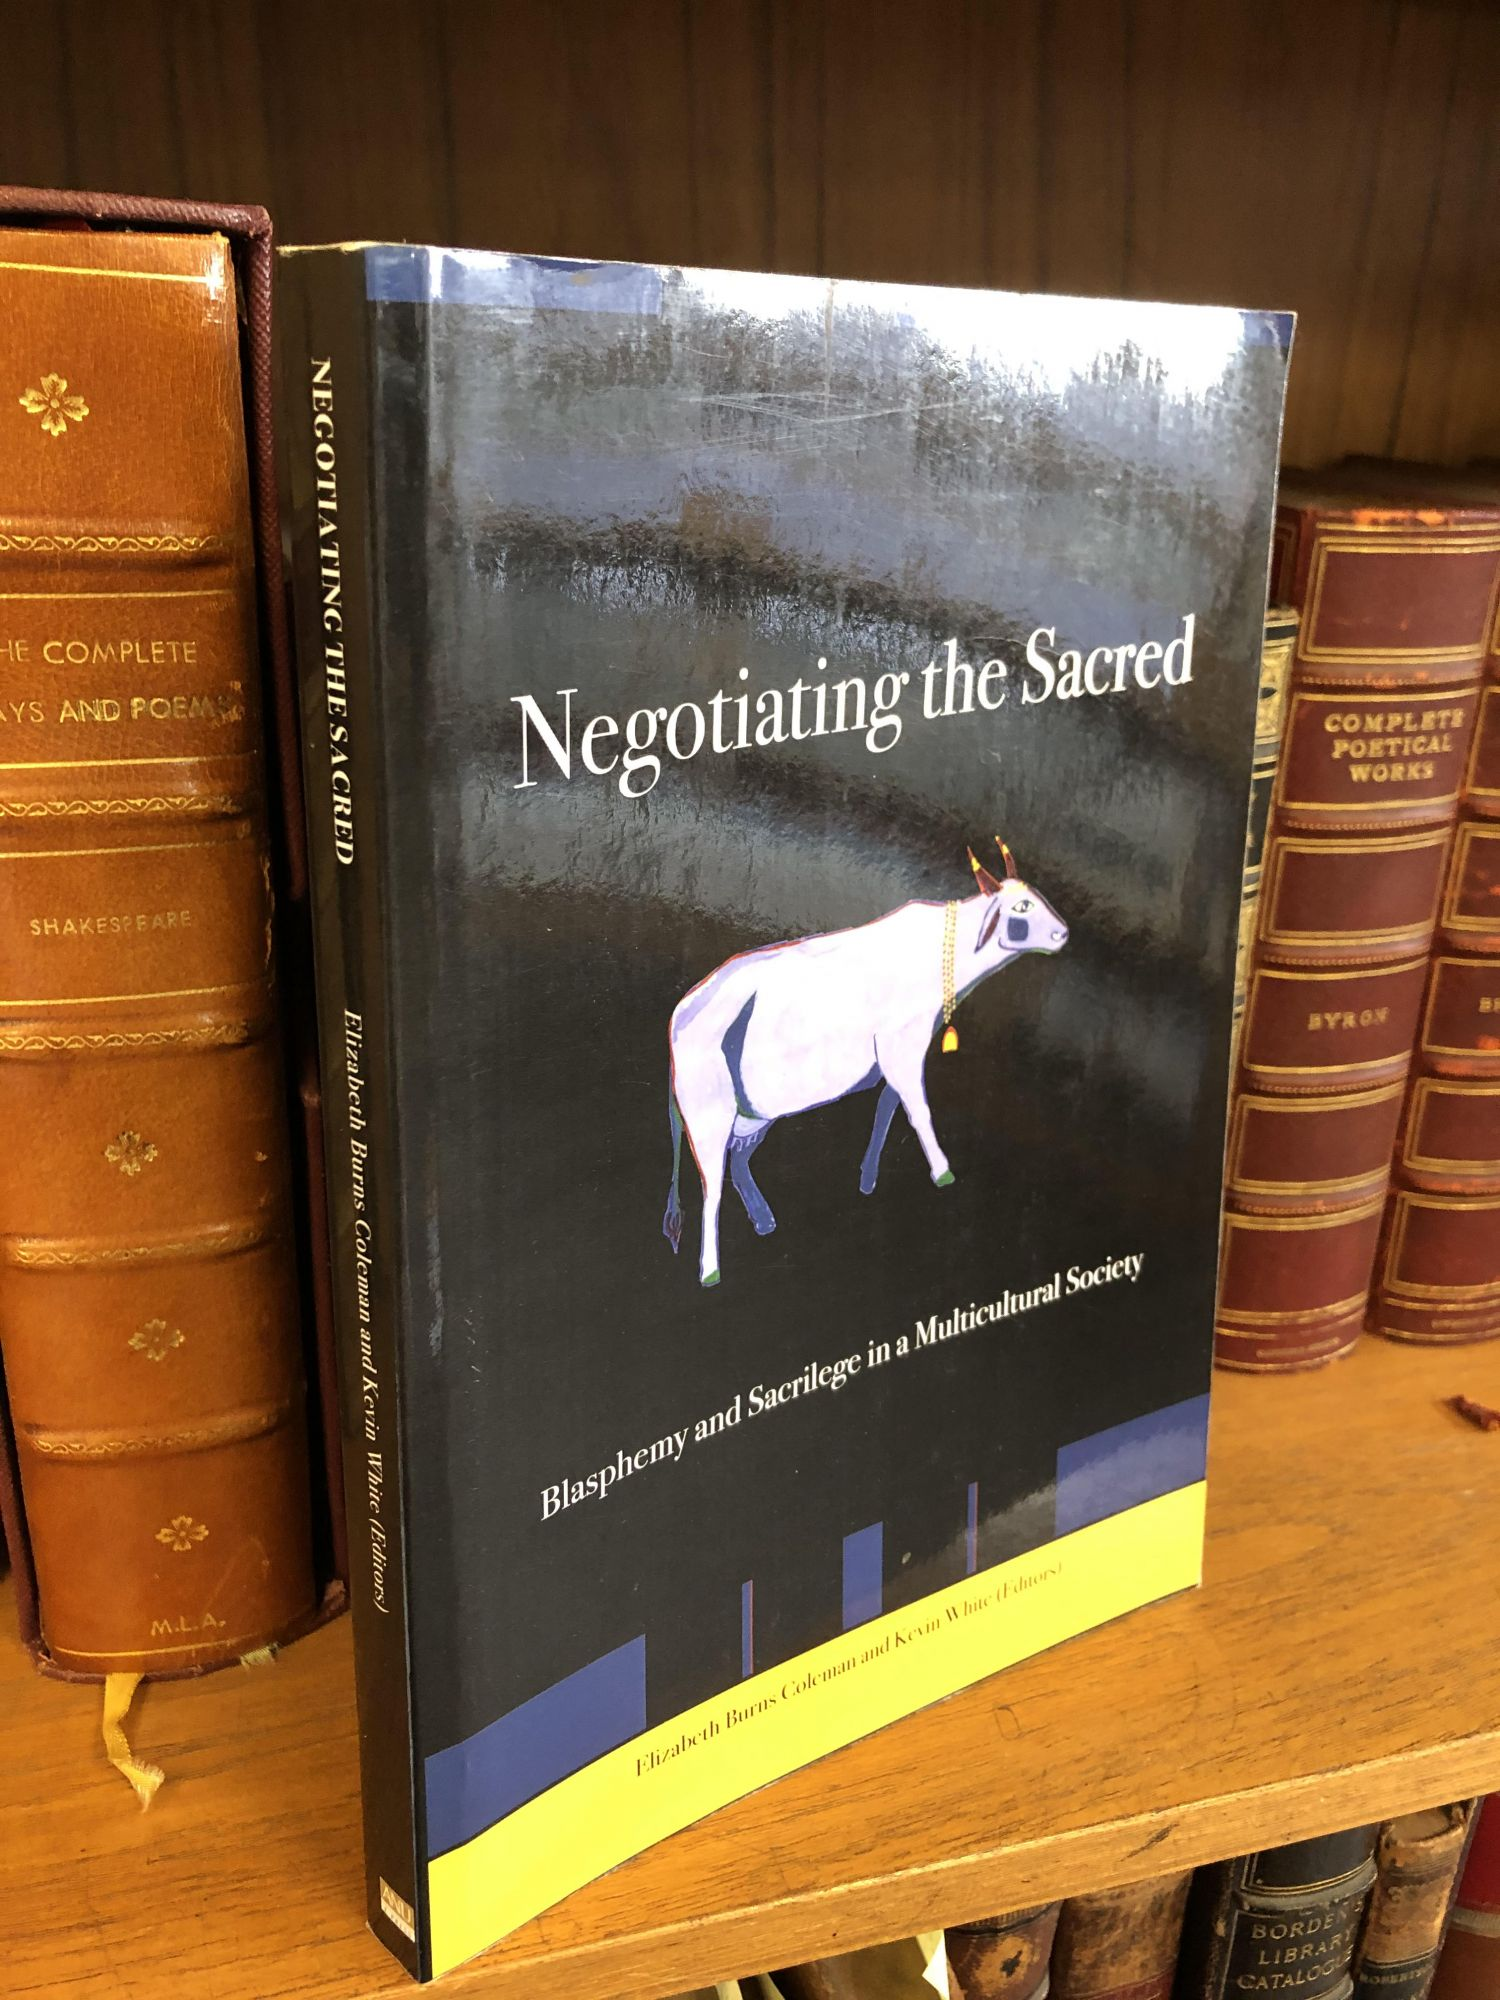 NEGOTIATING THE SACRED: BLASPHEMY AND SACRILEGE IN A MULTICULTURAL SOCIETY. Elizabeth Burns Coleman, Kevin White.